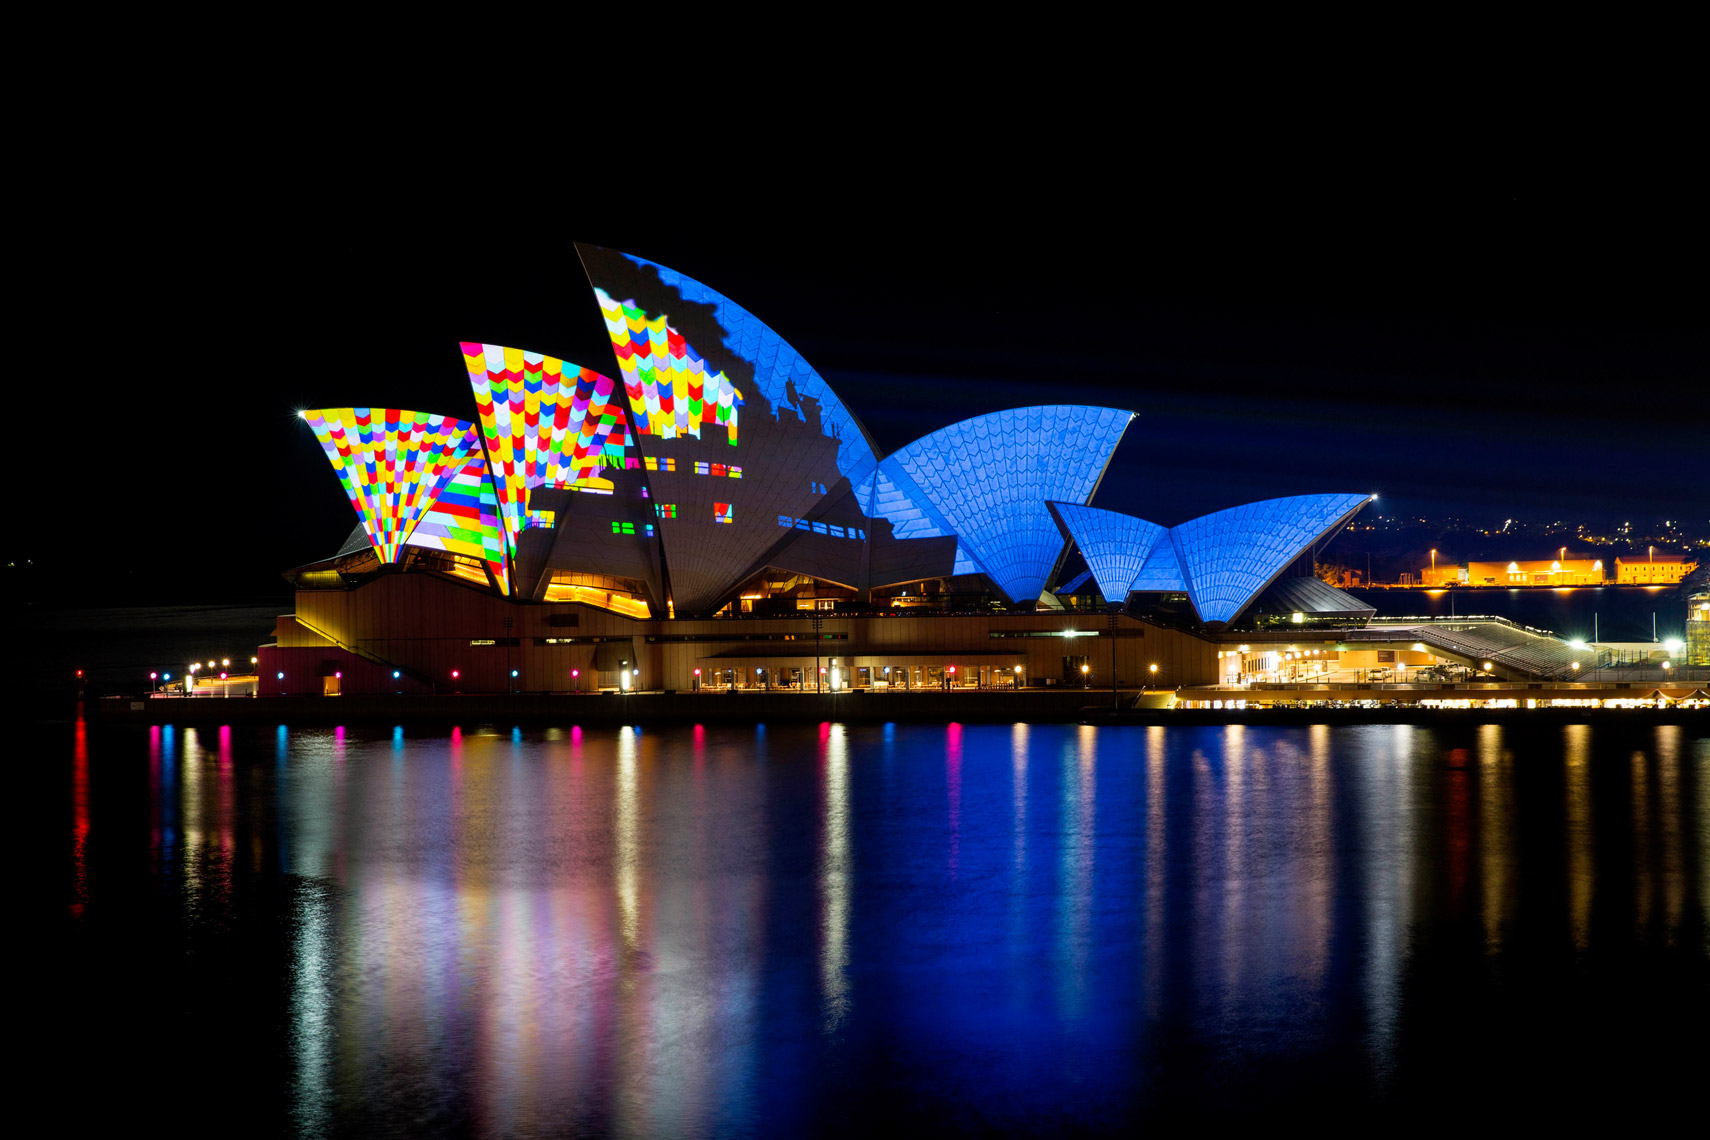 Vivid-Sydney-2014_lighting-the-sails_opera-house_JHORAN_DNSW-----01